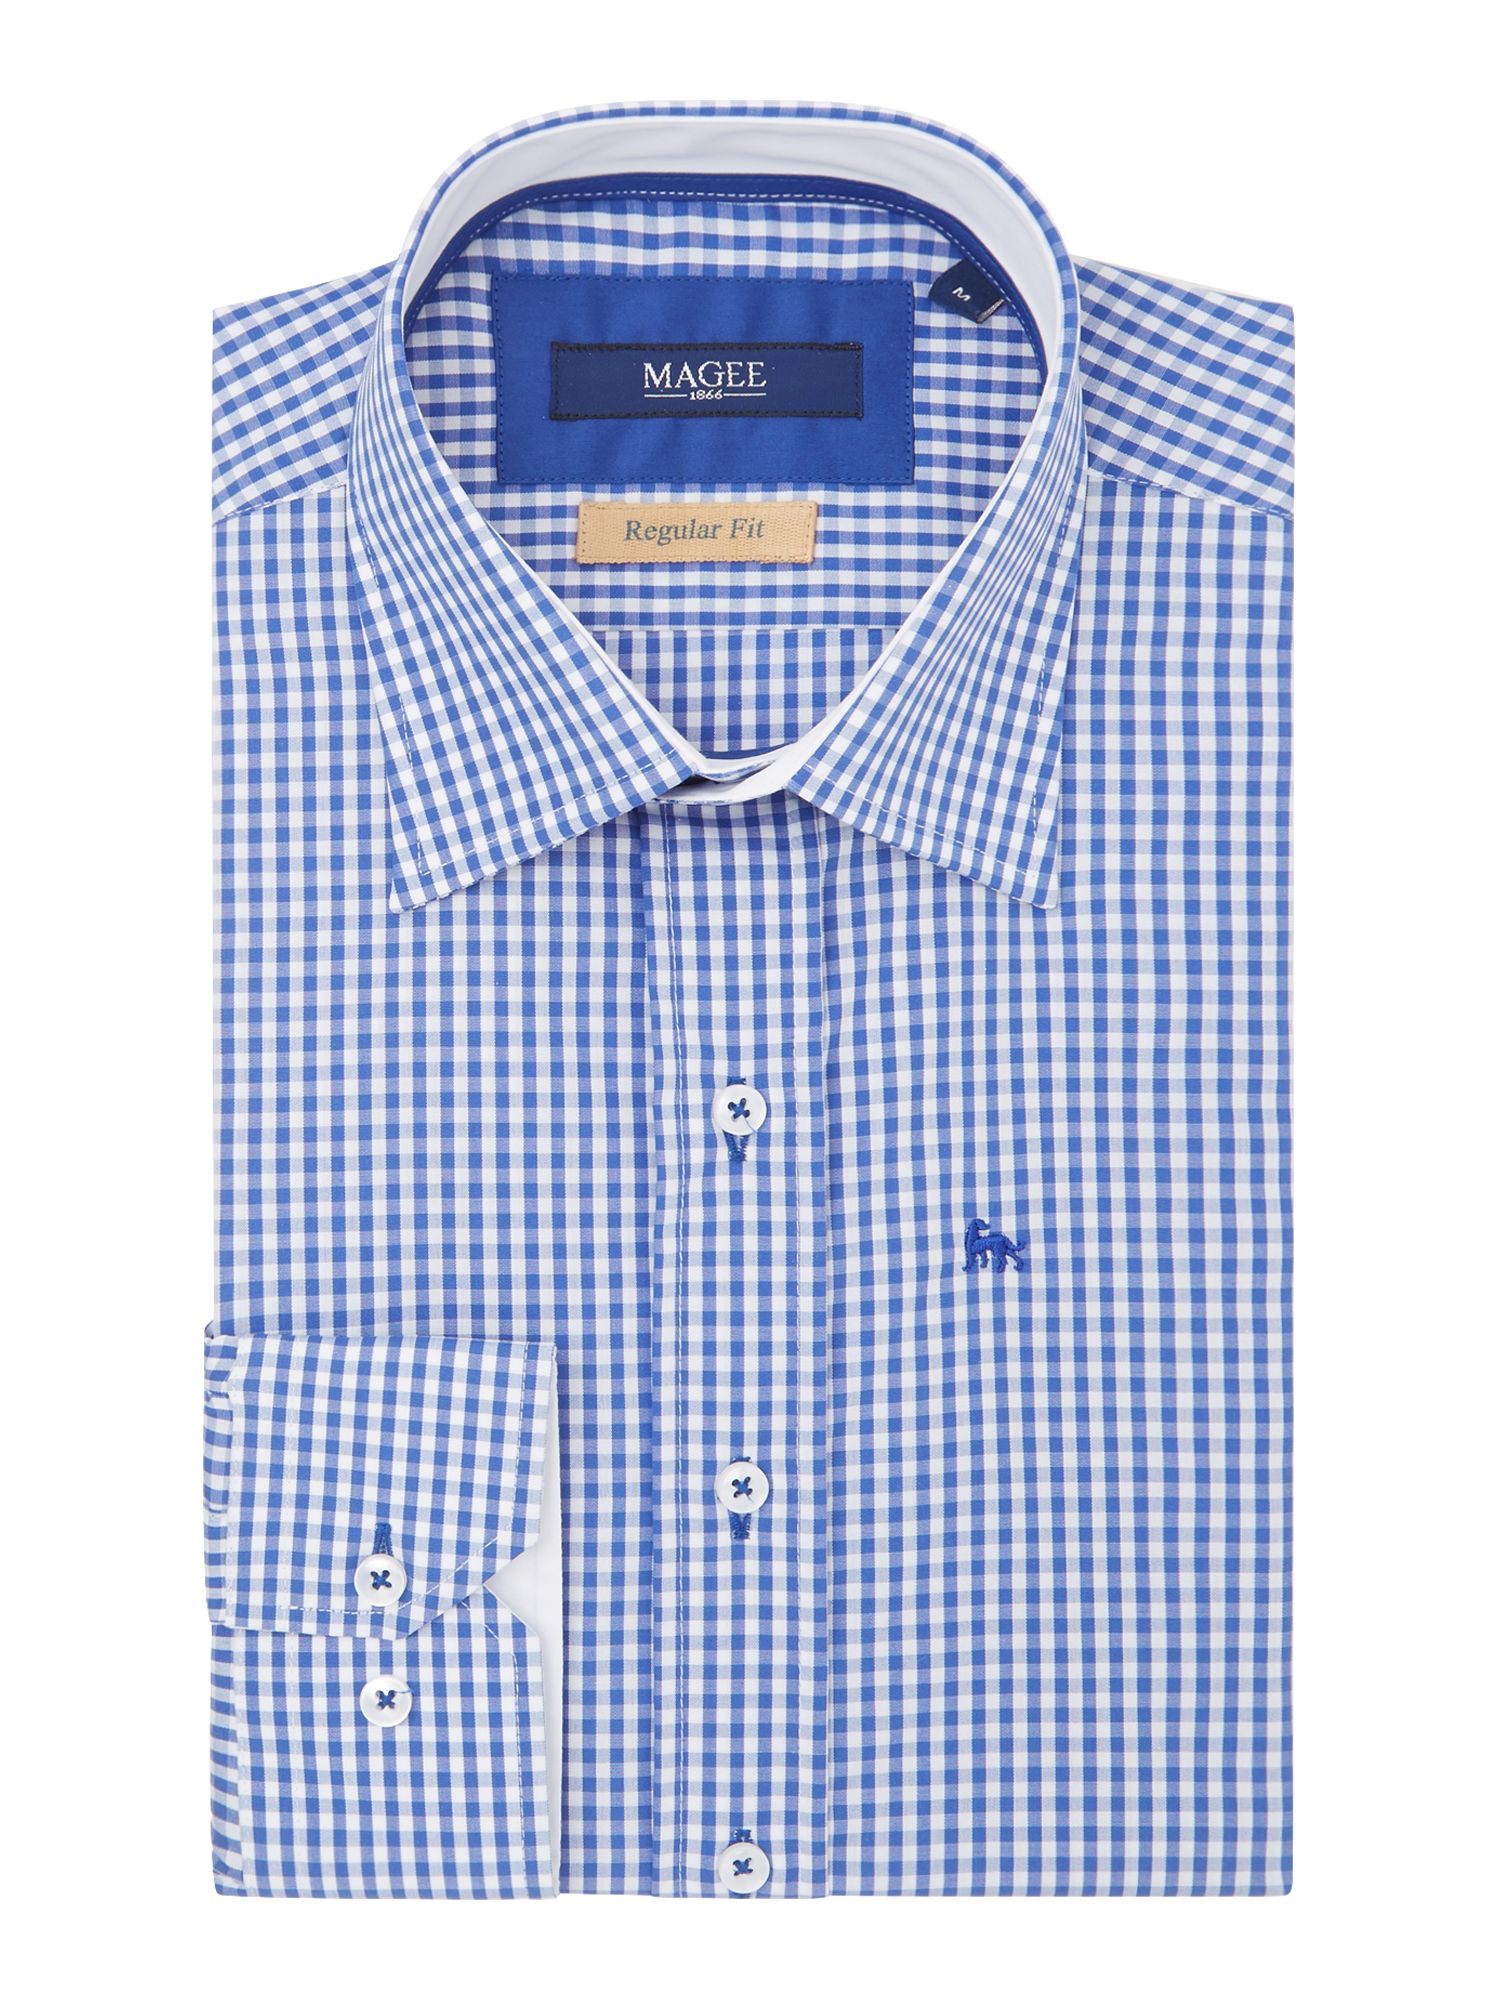 Magee Men's Magee Check Classic Fit Long Sleeve Shirt, Blue